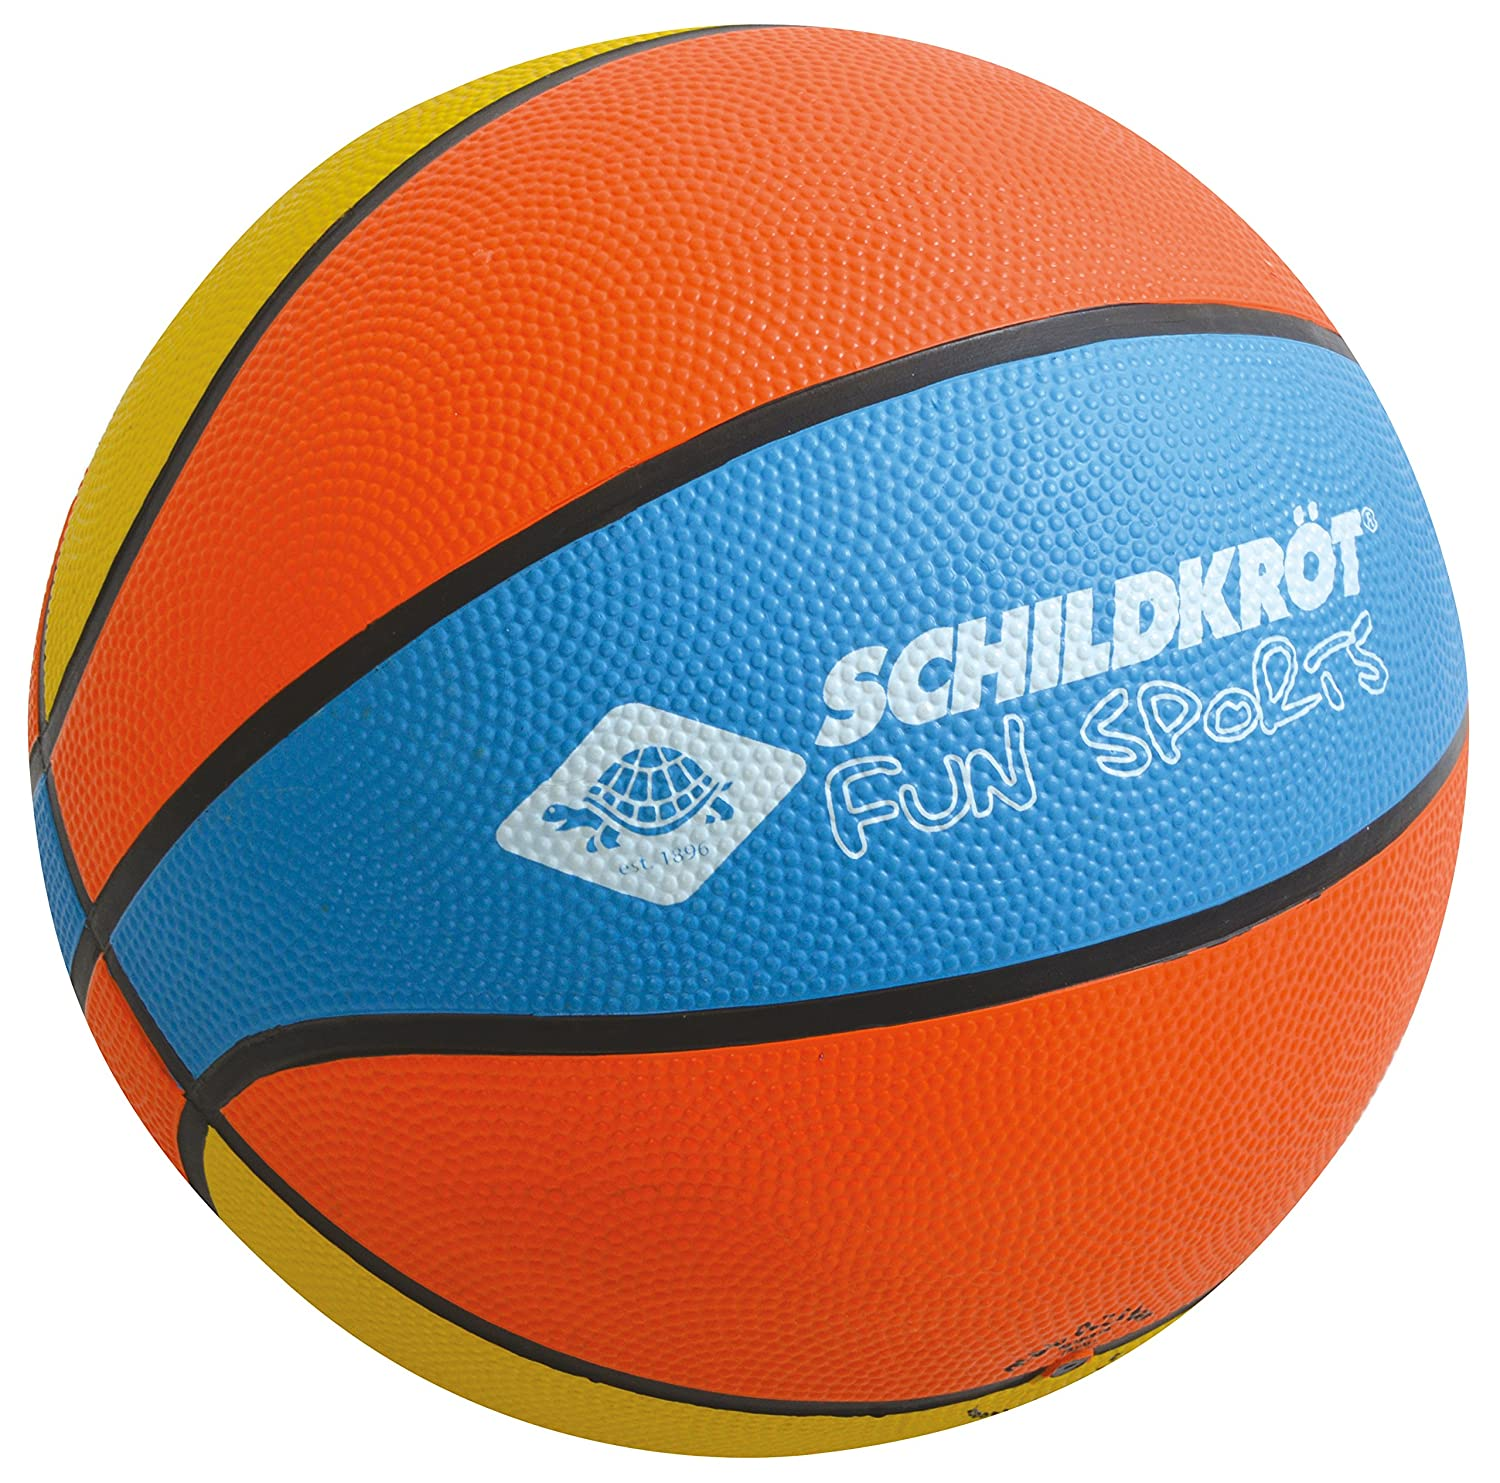 Schildkröt Funsports 2287987 Ballon de Basketball Mixte Enfant, Orange/Bleu/Jaune, Taille 5